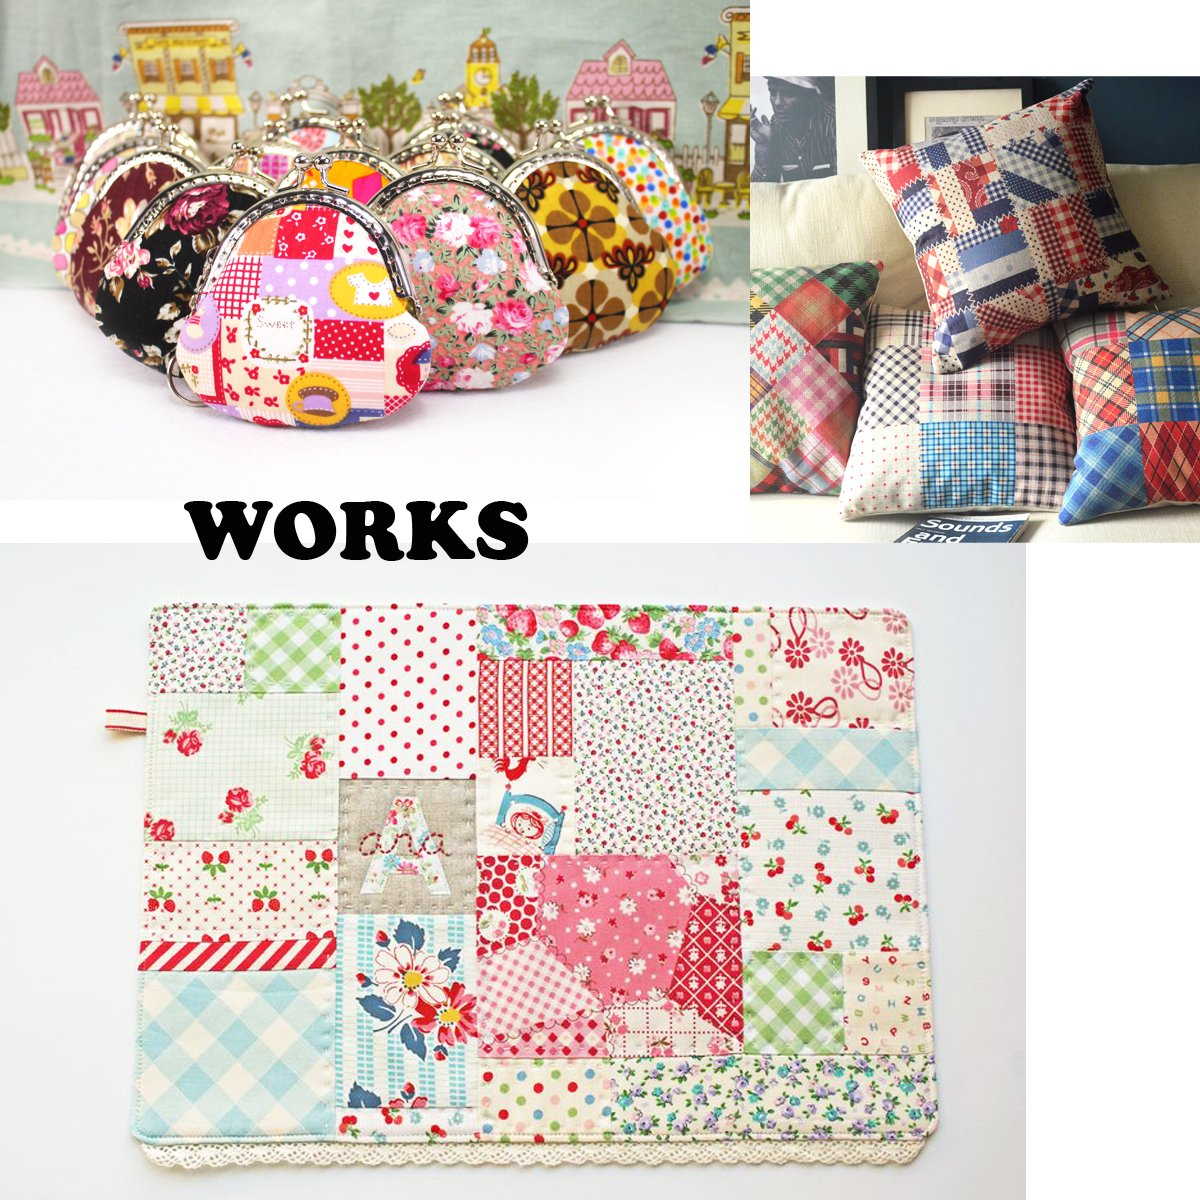 flic-flac 200pcs 4 x 4 inches (10cmx10cm) Cotton Craft Fabric Bundle Squares Patchwork Lint DIY Sewing Scrapbooking Quilting Dot Pattern Artcraft by flic-flac (Image #7)